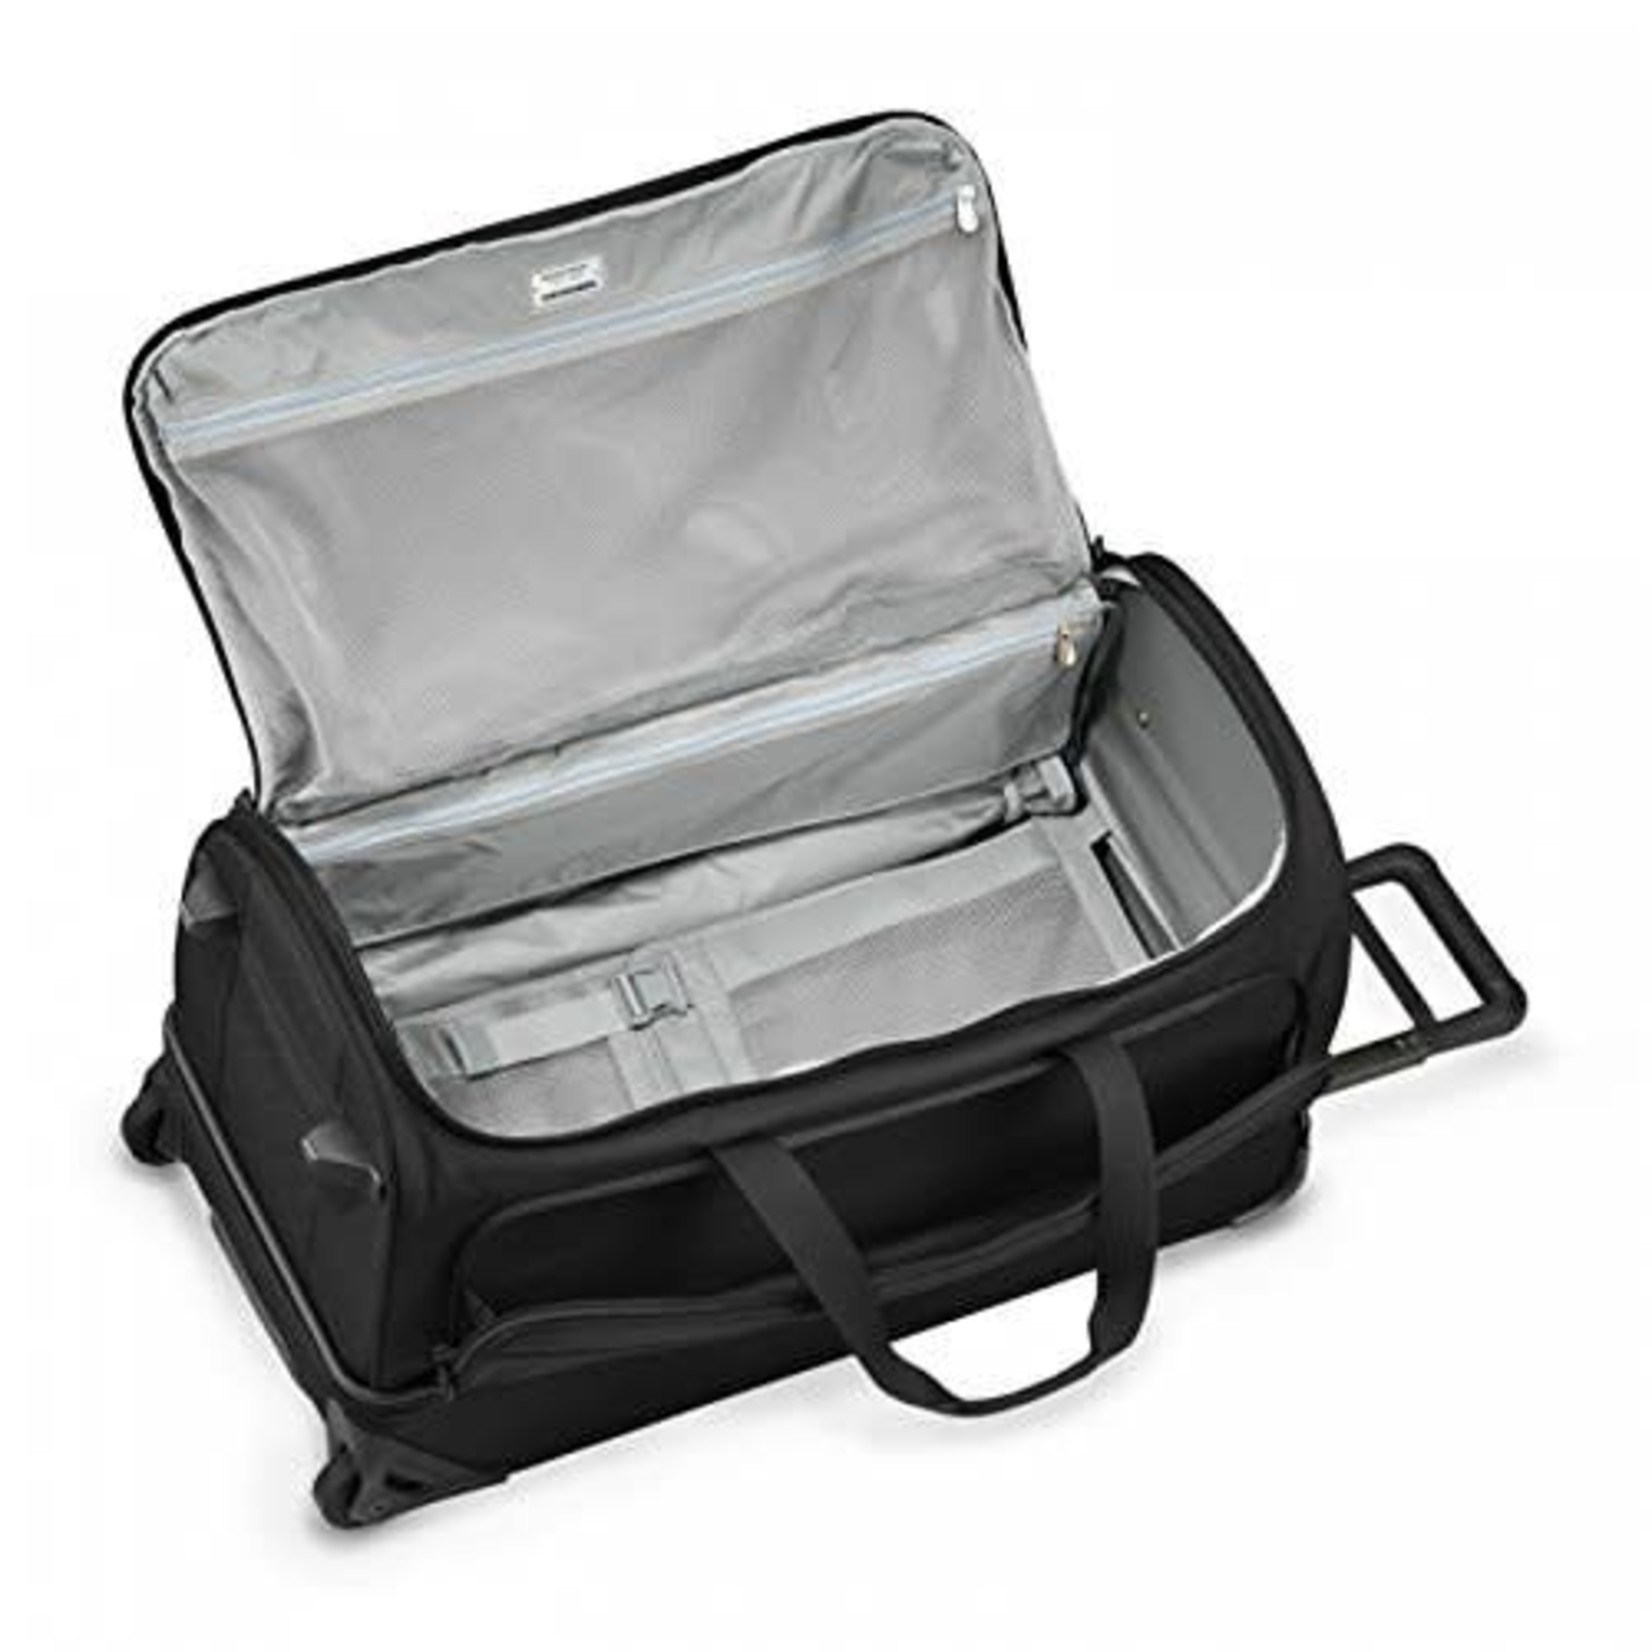 BRIGGS & RILEY Briggs & Riley Large Upright Duffle